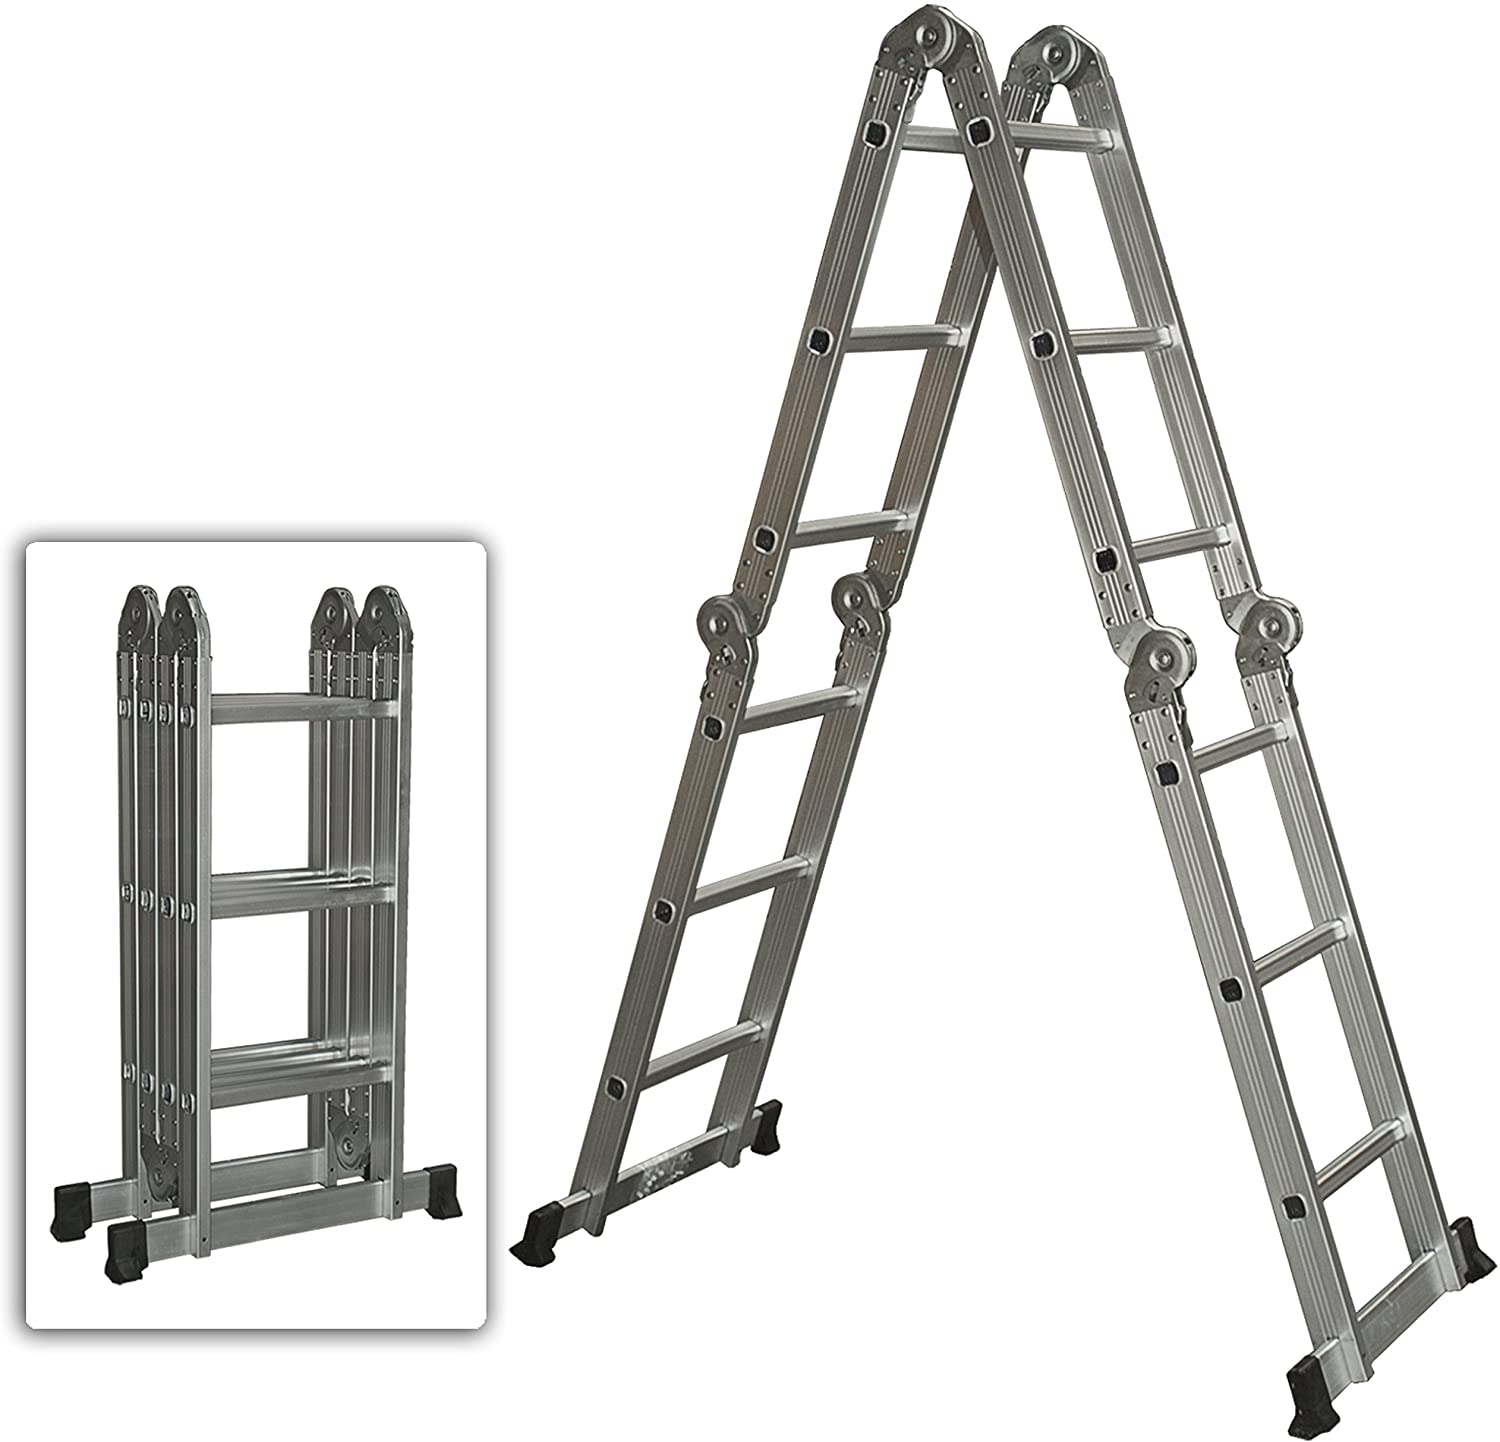 Best Choice Products Multi Purpose Aluminum Ladder Folding Step Ladder Extendable Heavy Duty - Extension Ladders - Amazon.com